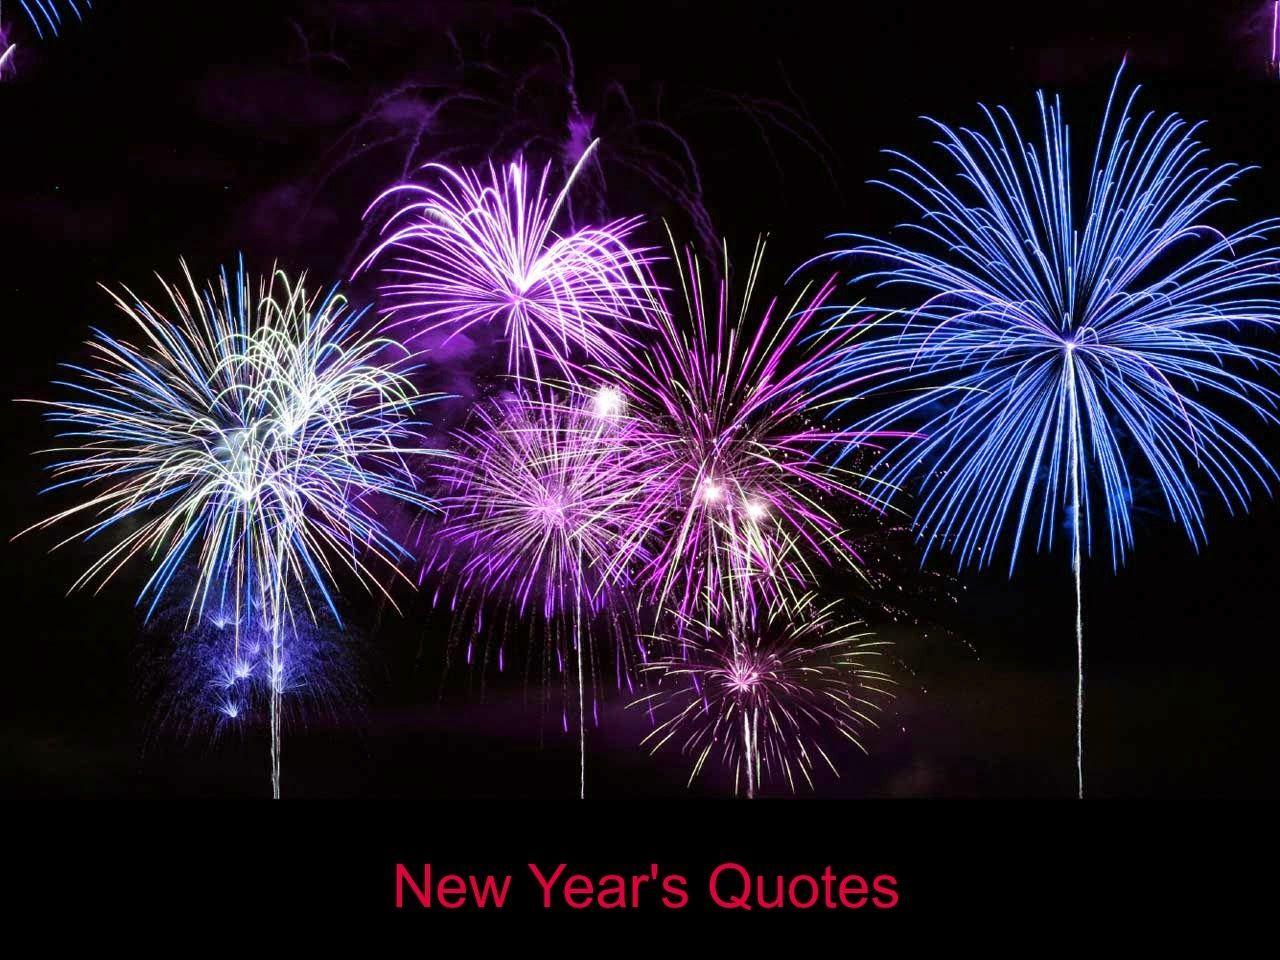 New Year's Quotes Fireworks, Quotes about new year, New